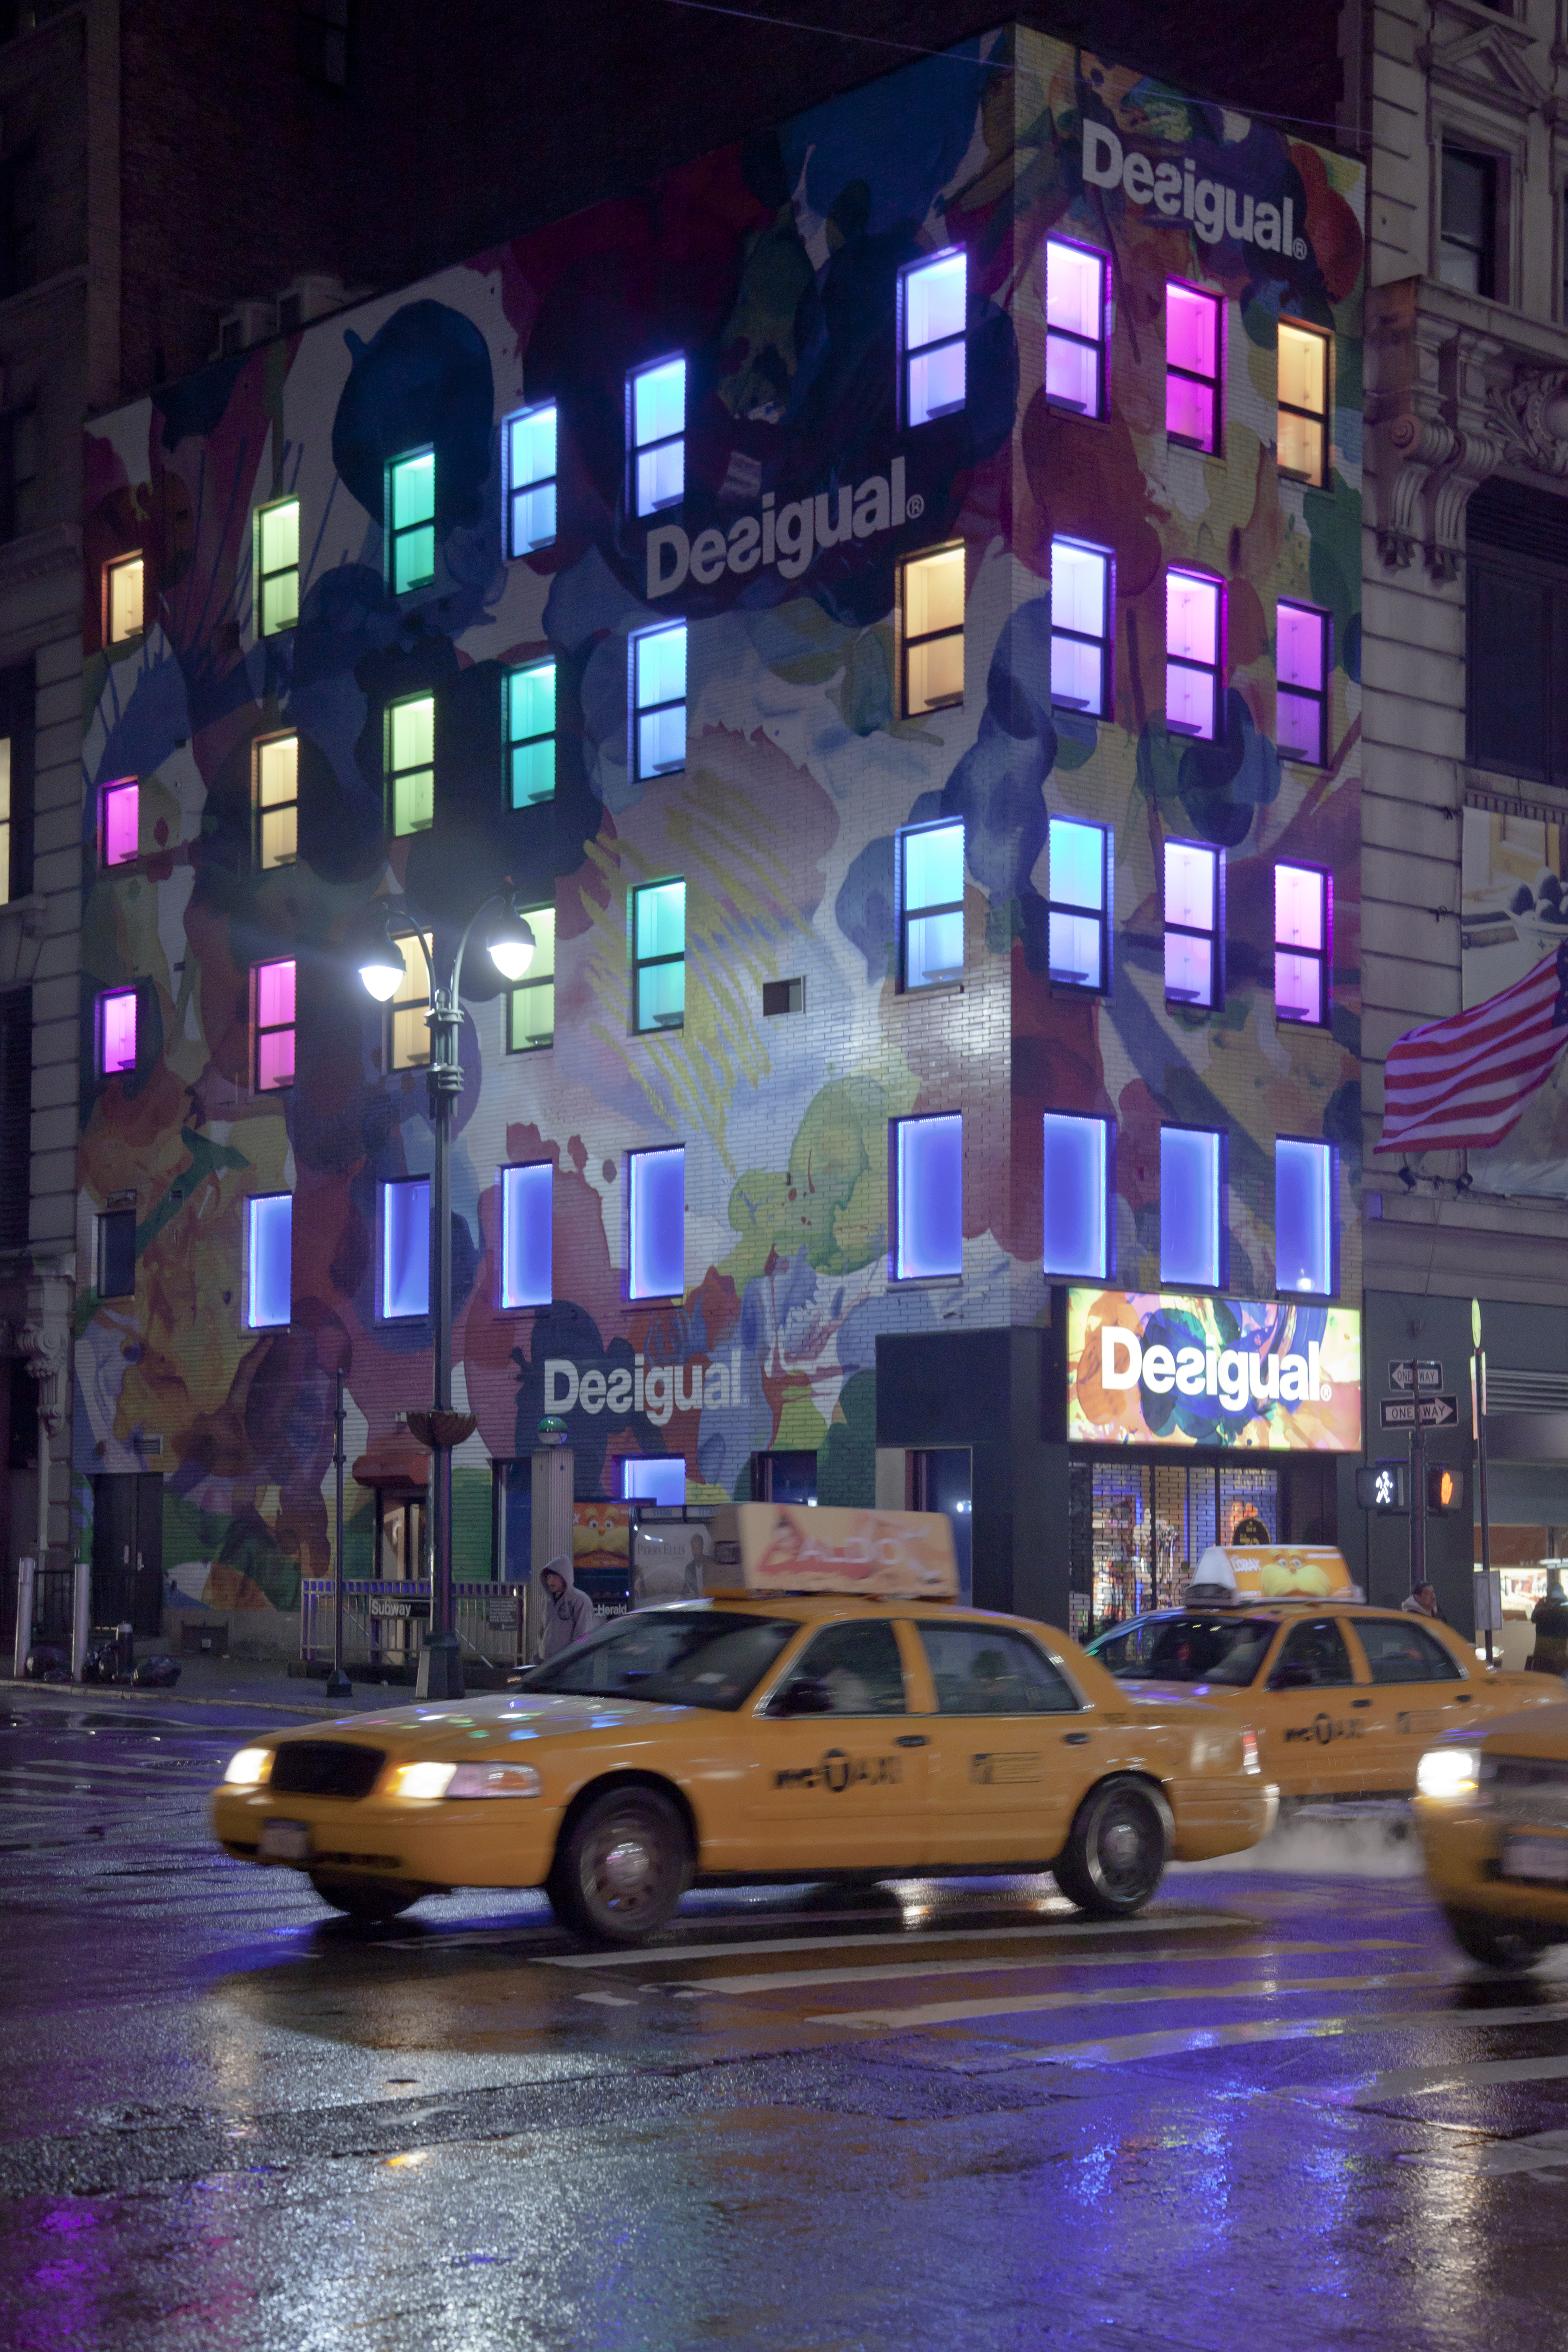 New York City Desigual Store At Night